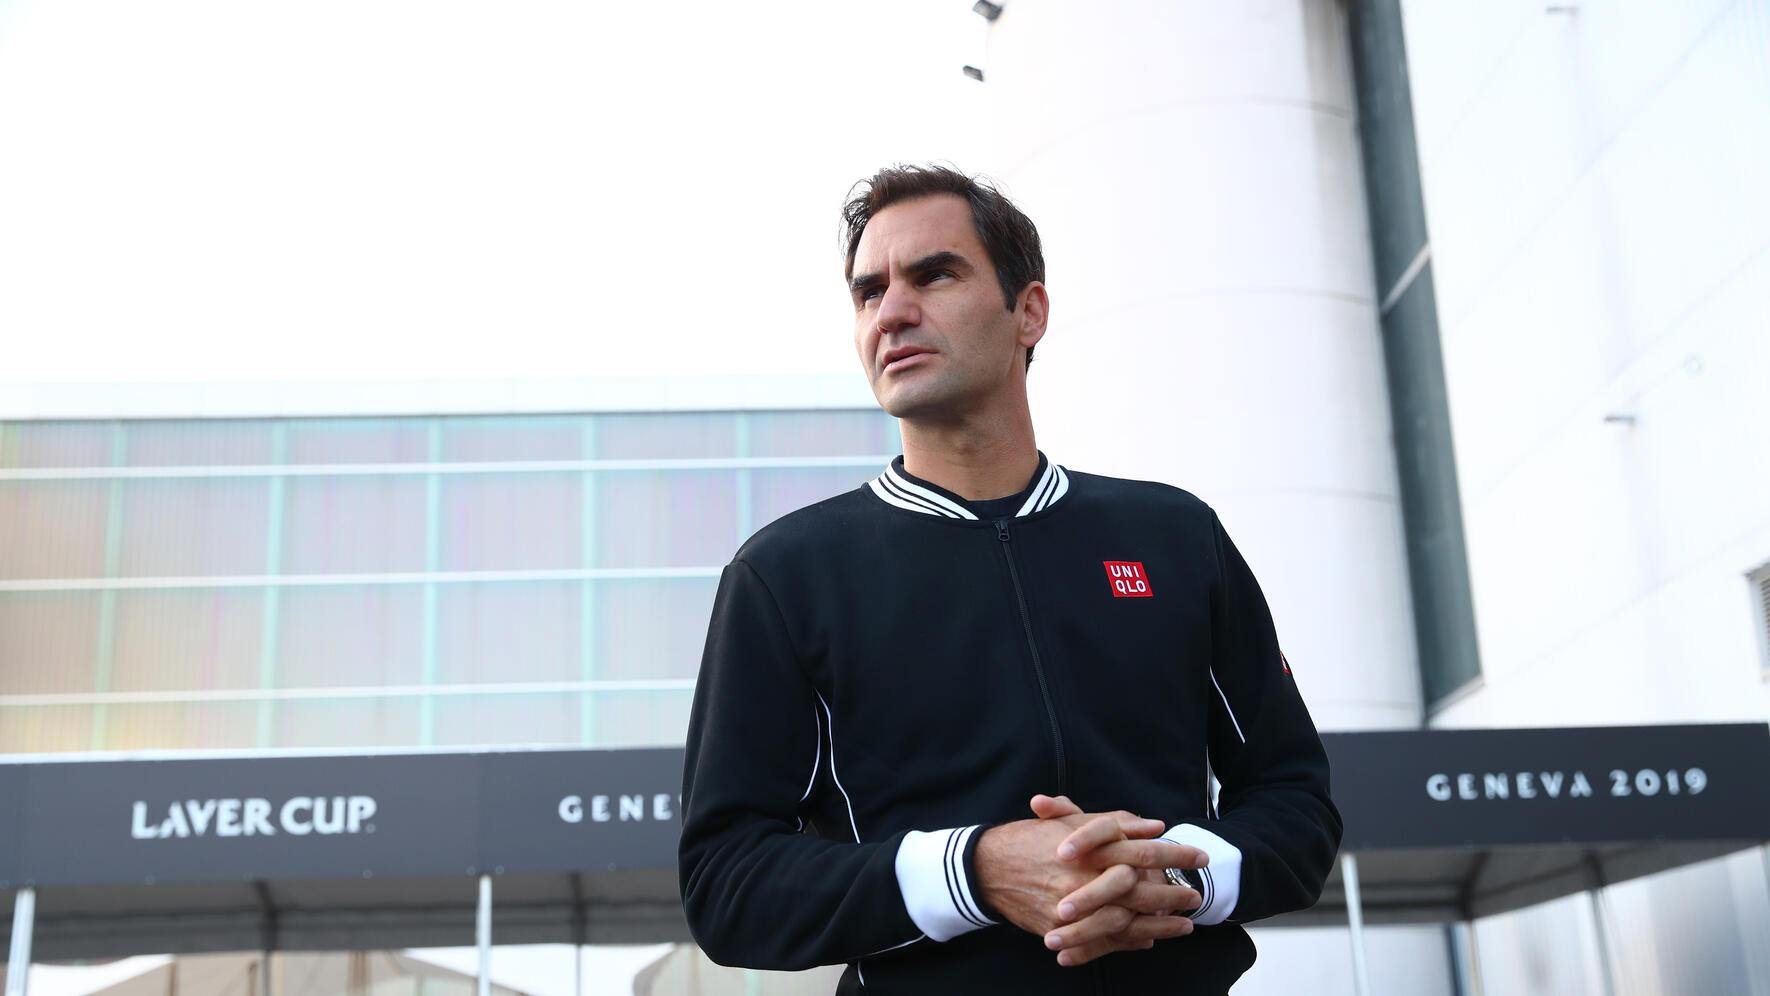 GENEVA, SWITZERLAND - SEPTEMBER 17: Roger Federer of Team Europe takes a first look at the venue prior to the Laver Cup at Palexpo on September 17, 2019 in Geneva, Switzerland. ( The Laver Cup consists of six players from the rest of the World competing against their counterparts from Europe.John McEnroe will captain the Rest of the World team and Europe will be captained by Bjorn Borg)  The event runs from 20-22 Sept.  (Photo by Clive Brunskill/Getty Images for Laver Cup)